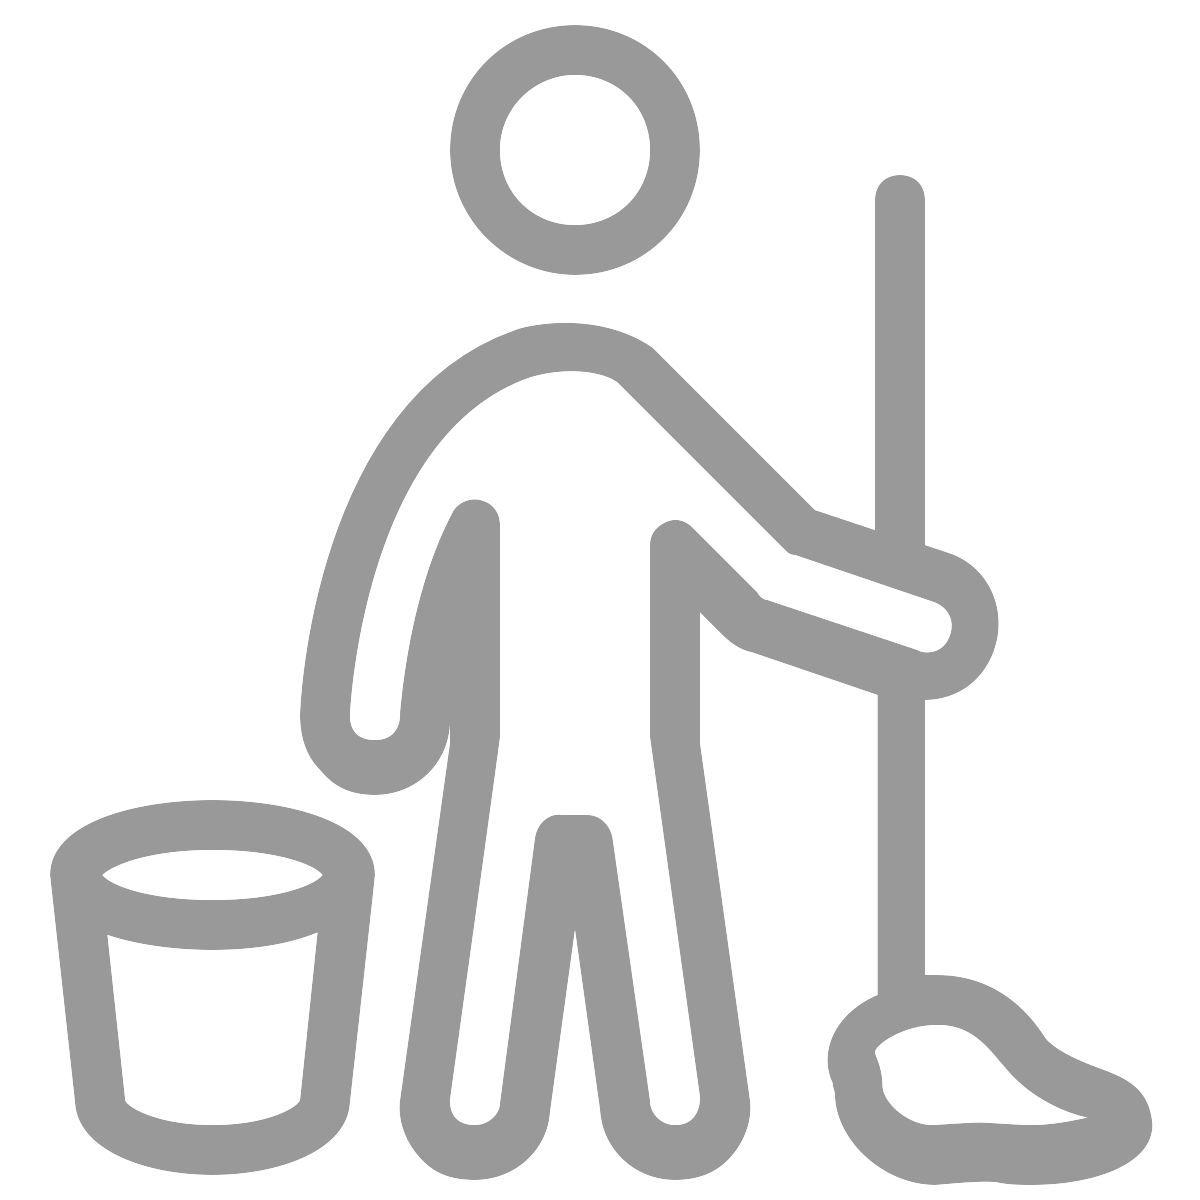 Teamwork clipart hospitality. Icon janitor staffing solutions